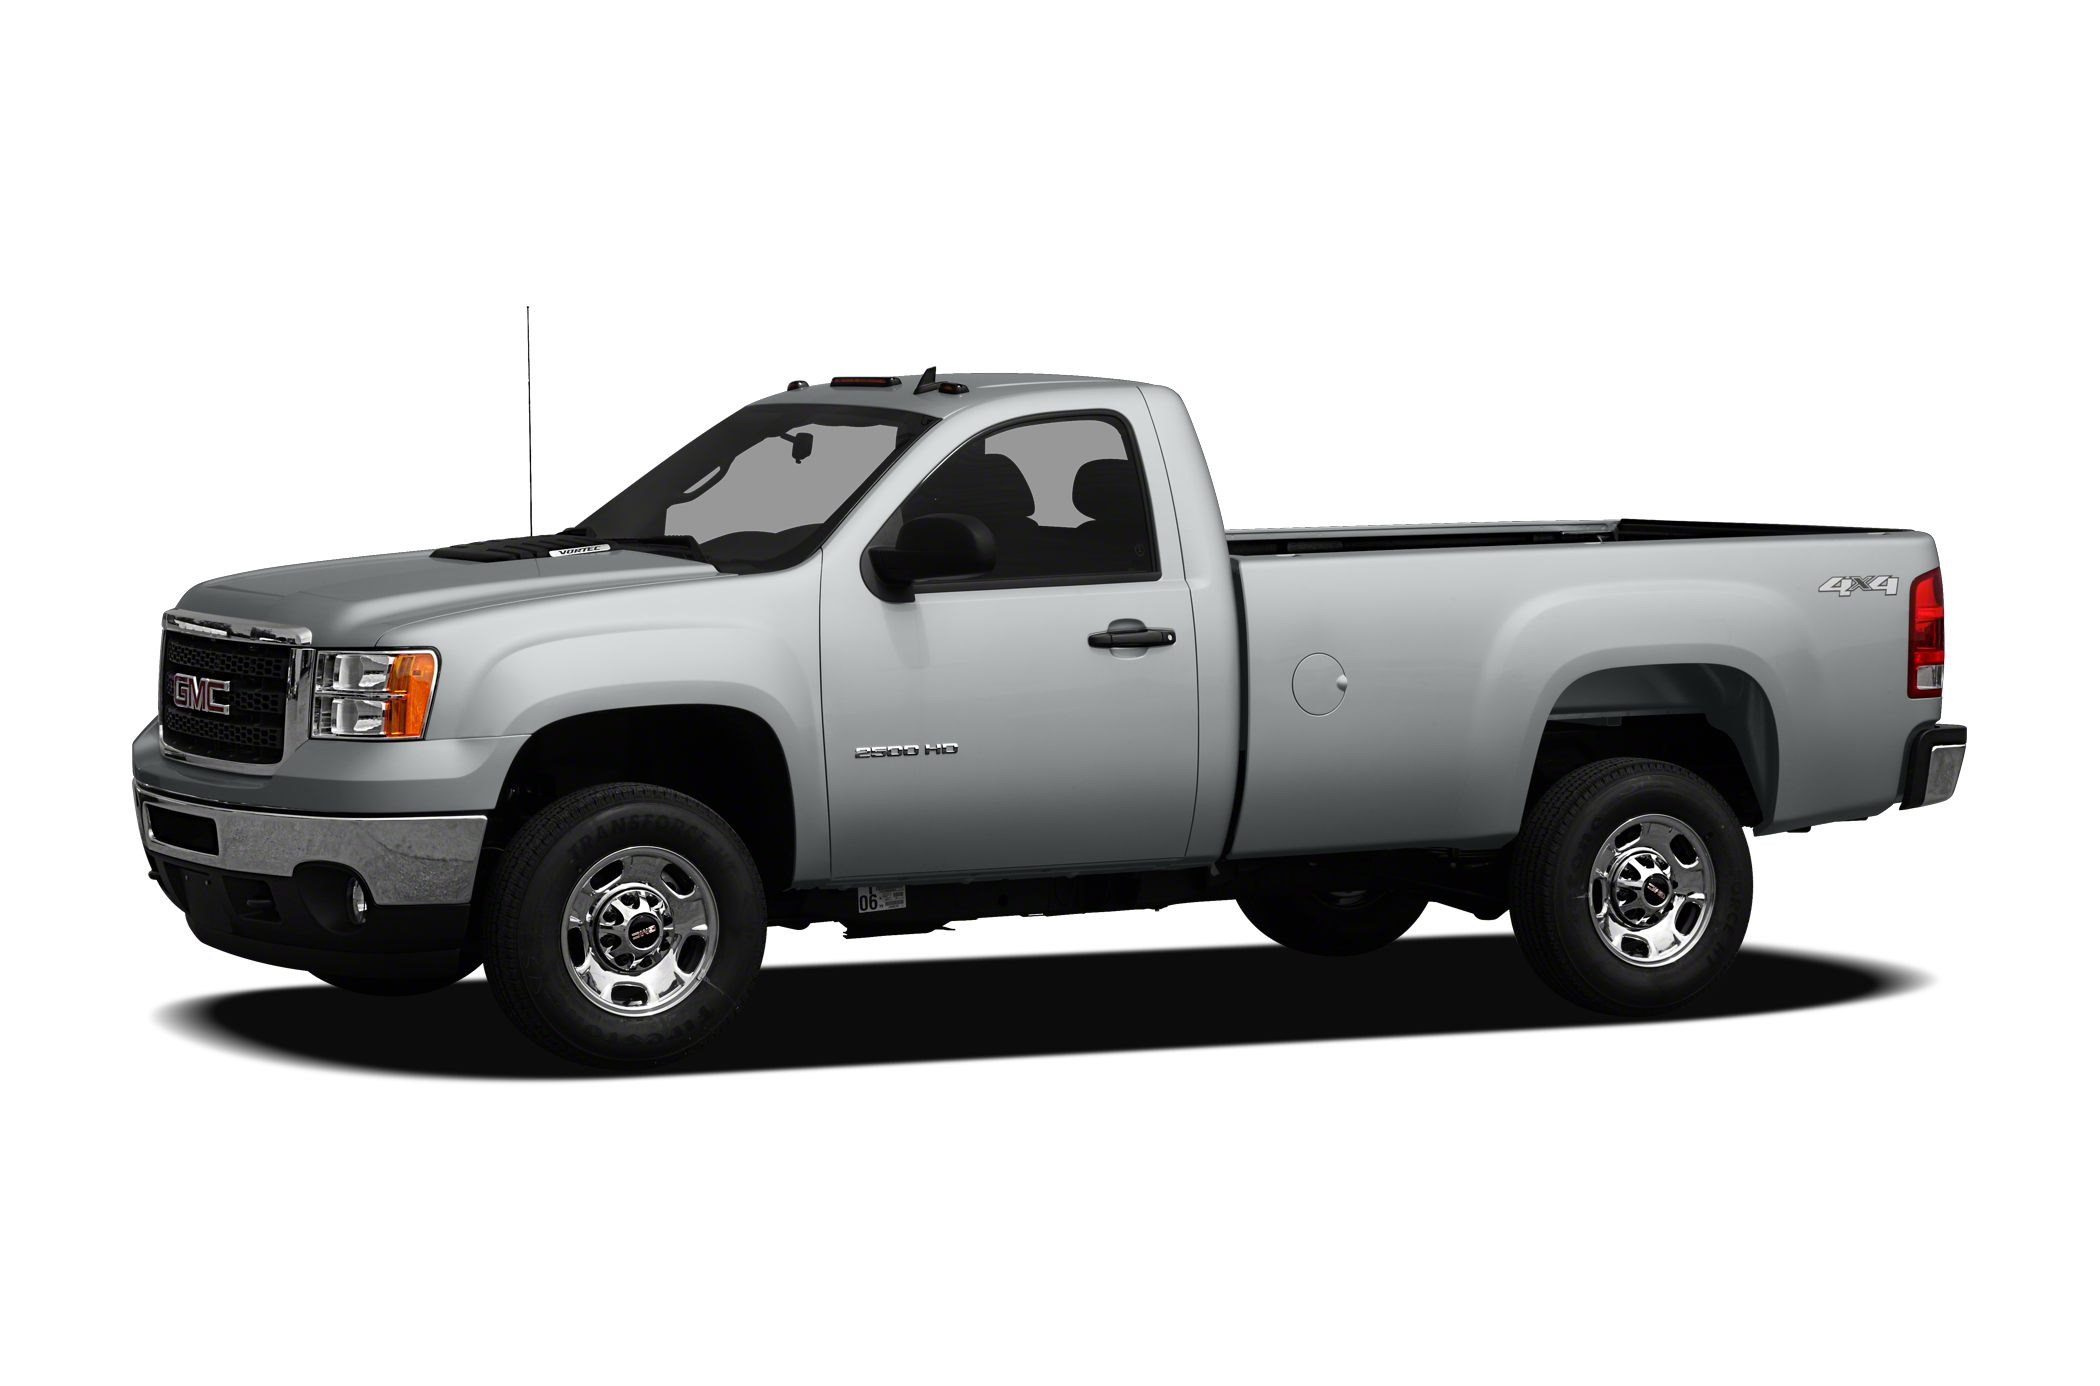 2012 GMC Sierra 2500 SLE Crew Cab Pickup for sale in Mccomb for $0 with 91,998 miles